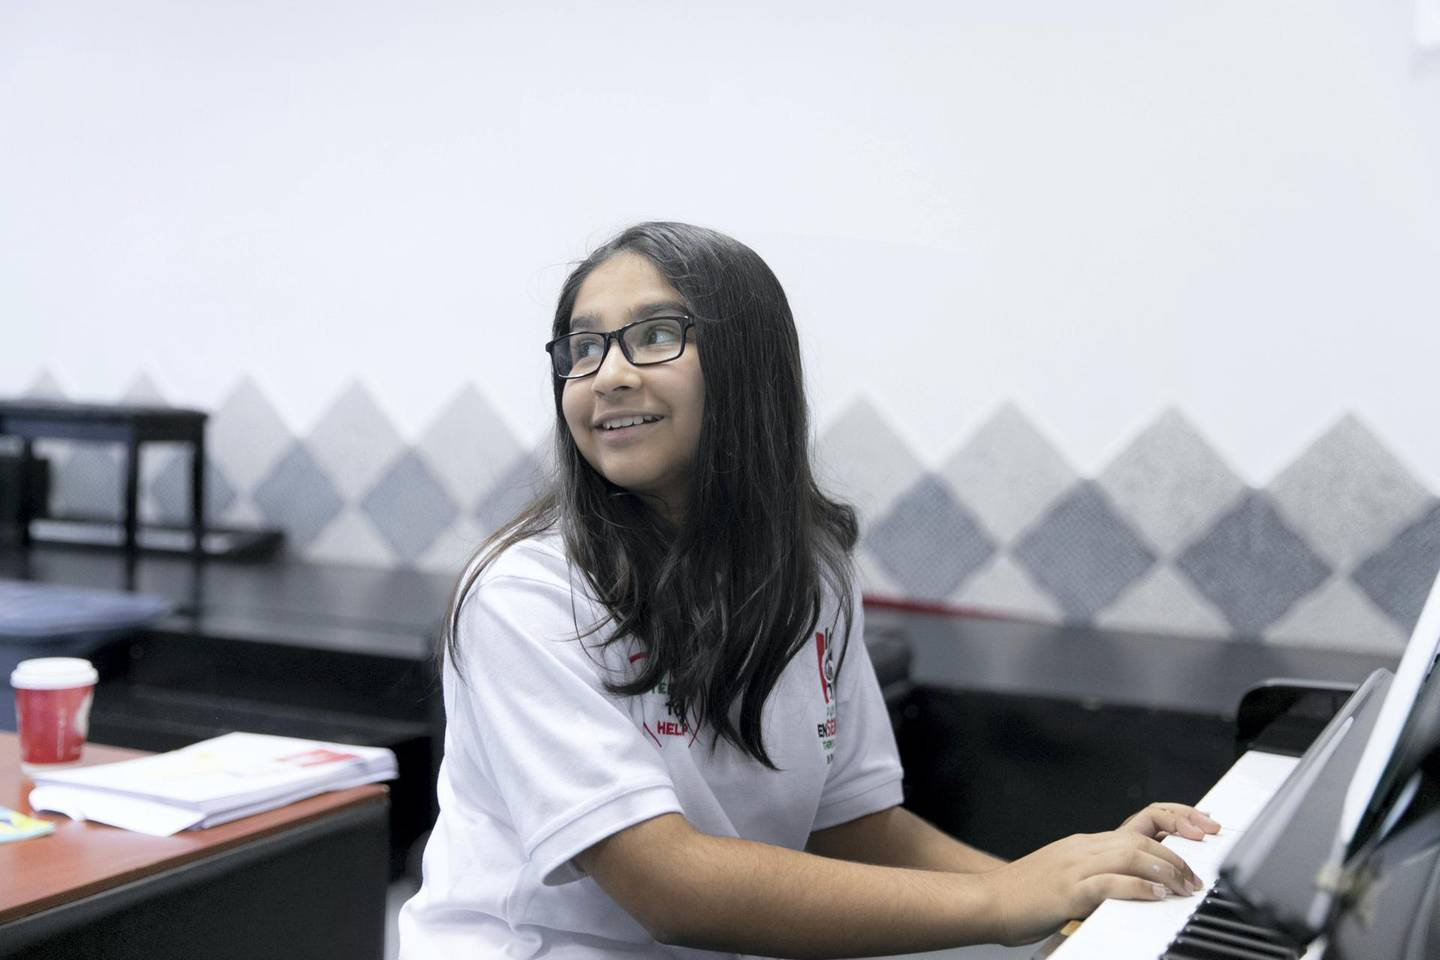 DUBAI, UNITED ARAB EMIRATES - DECEMBER 6, 2018. Zara  Sheikh, a member of Dubai Ensenble Choir, the U.A.E���s first choir for determined children rehearsal session at the Canadian University.(Photo by Reem Mohammed/The National)Reporter: Anam RizviSection:  NA